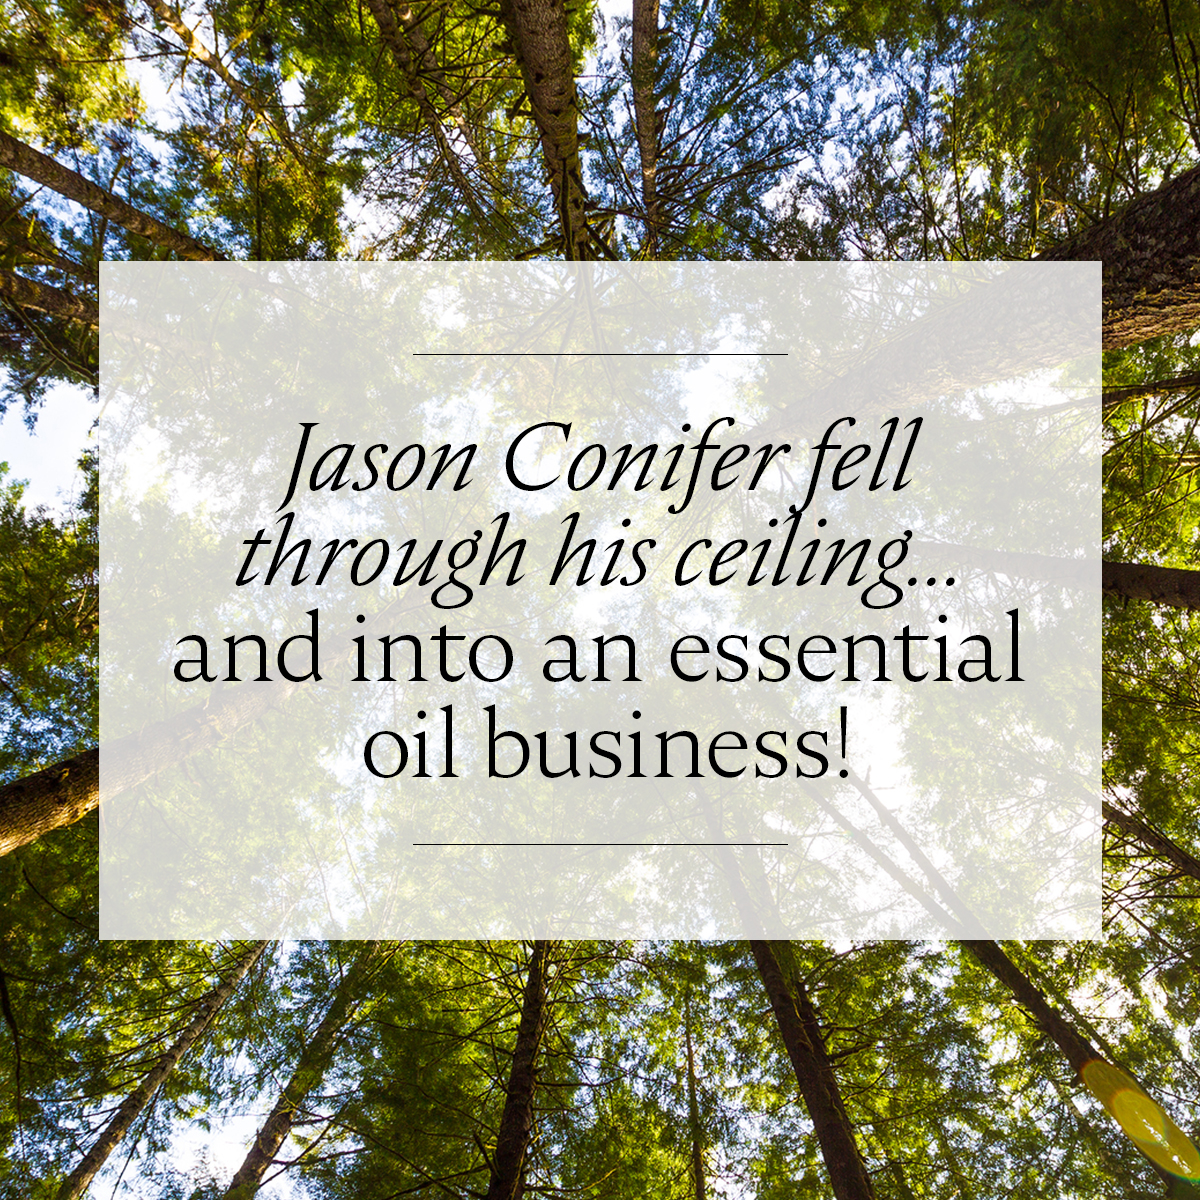 Jason Conifer fell through his ceiling... and into an essential oil business!